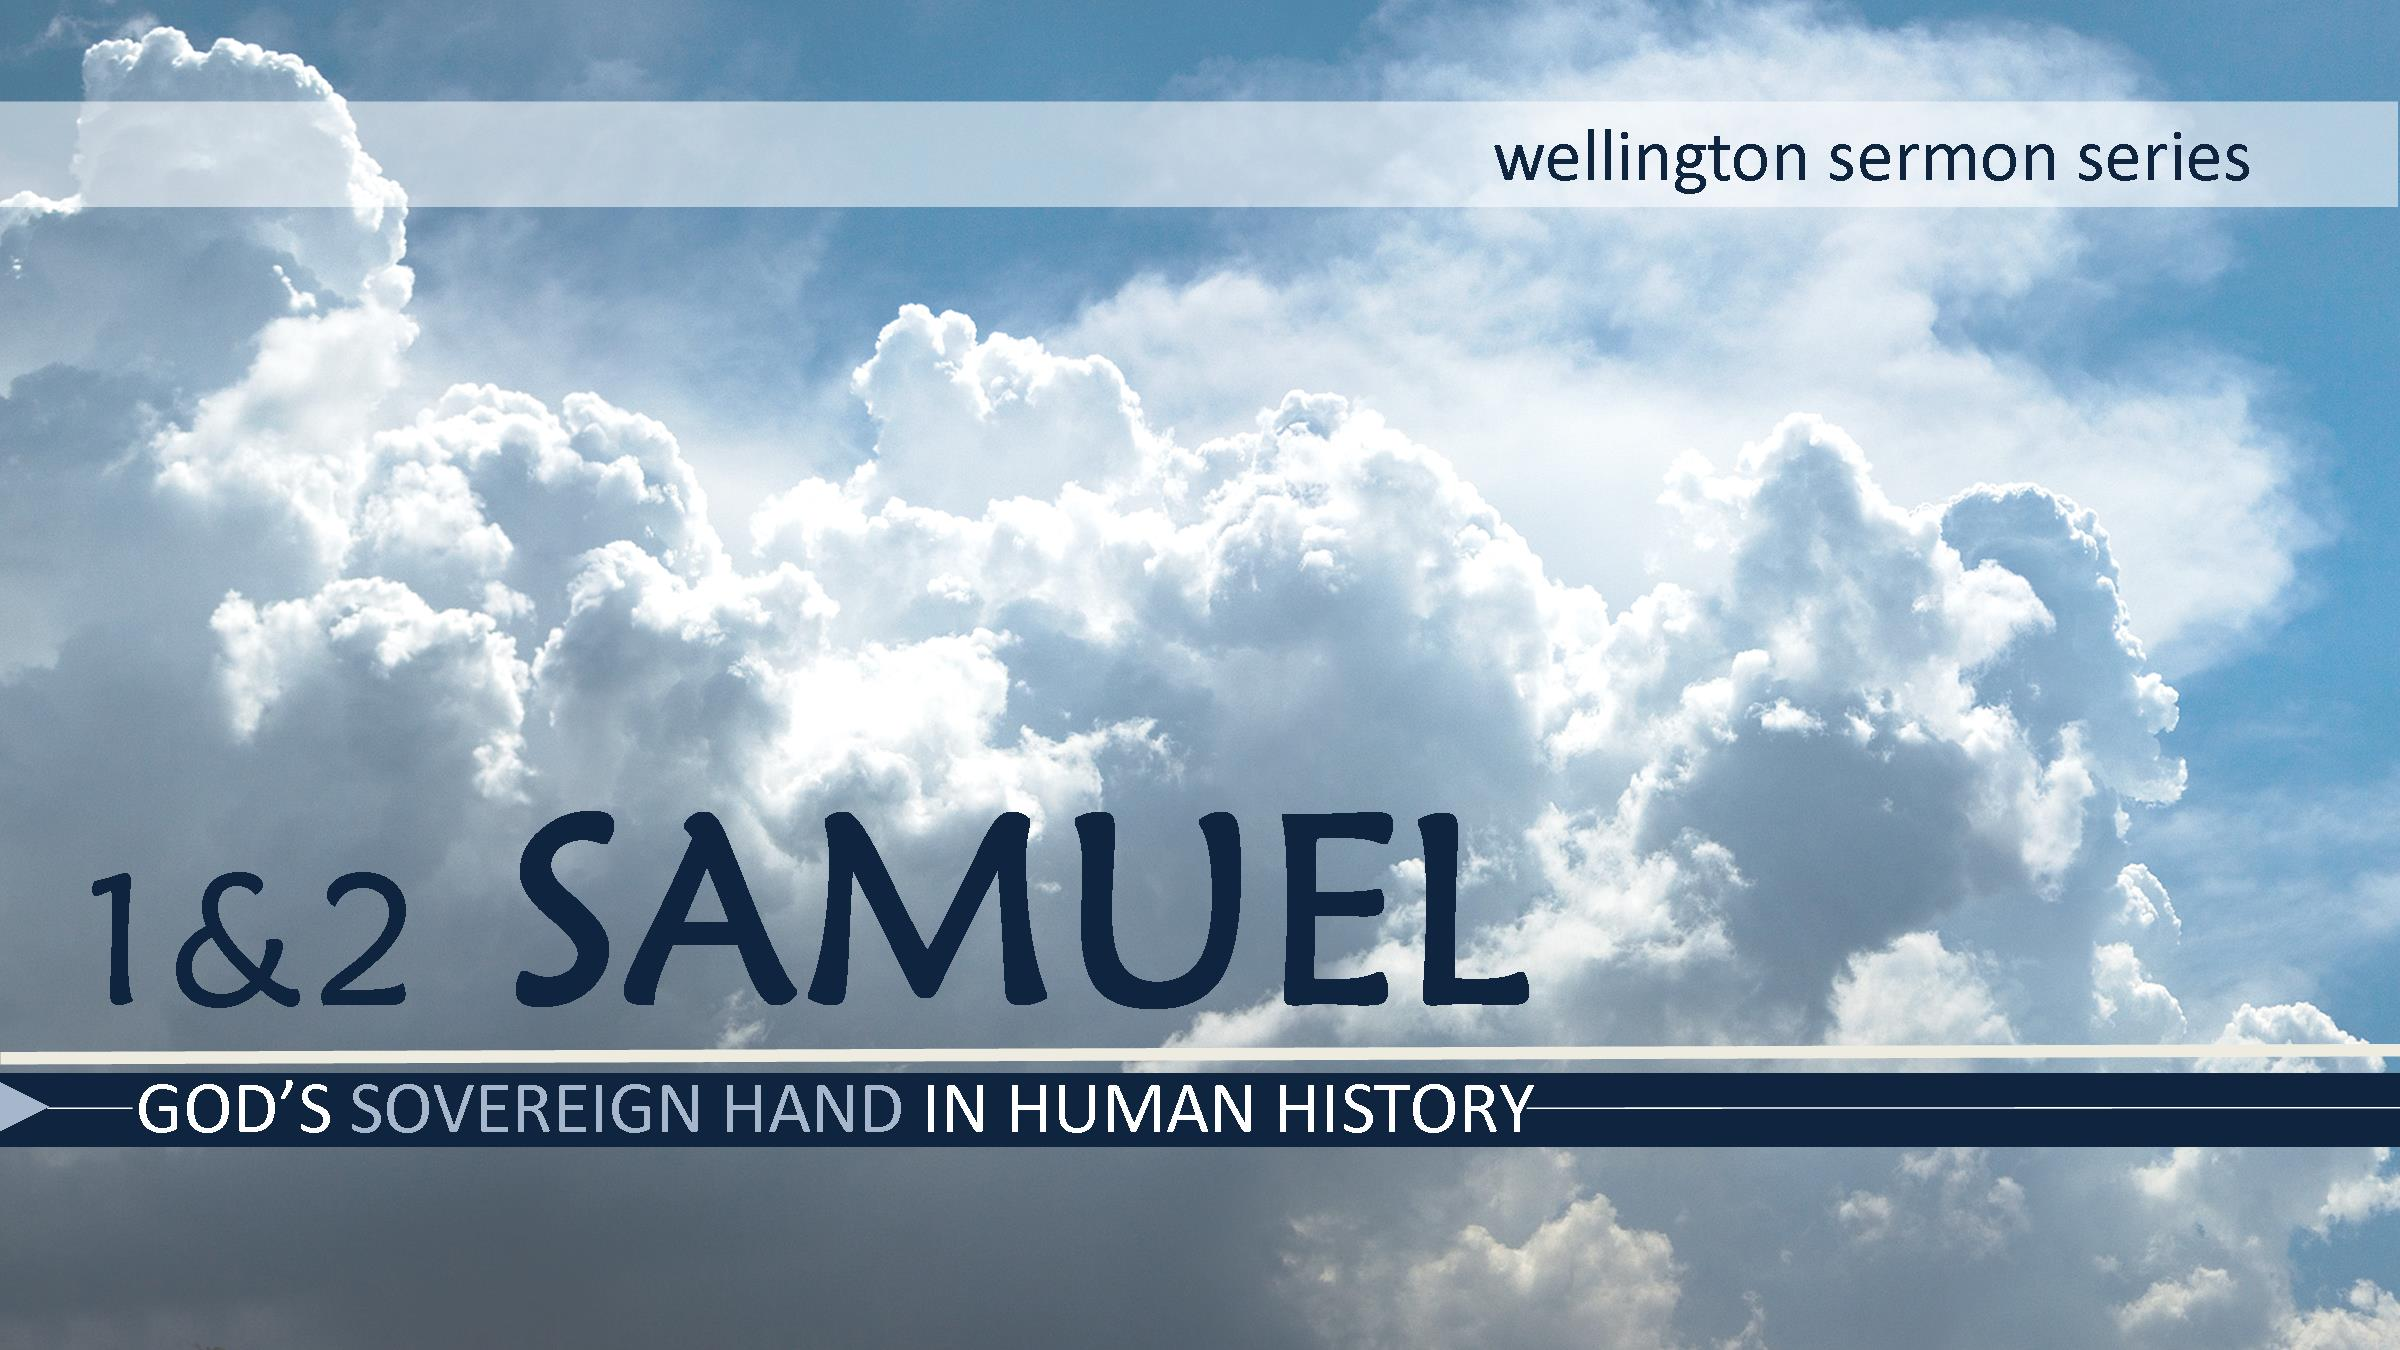 Current Sermon Series is the Book of Samuel